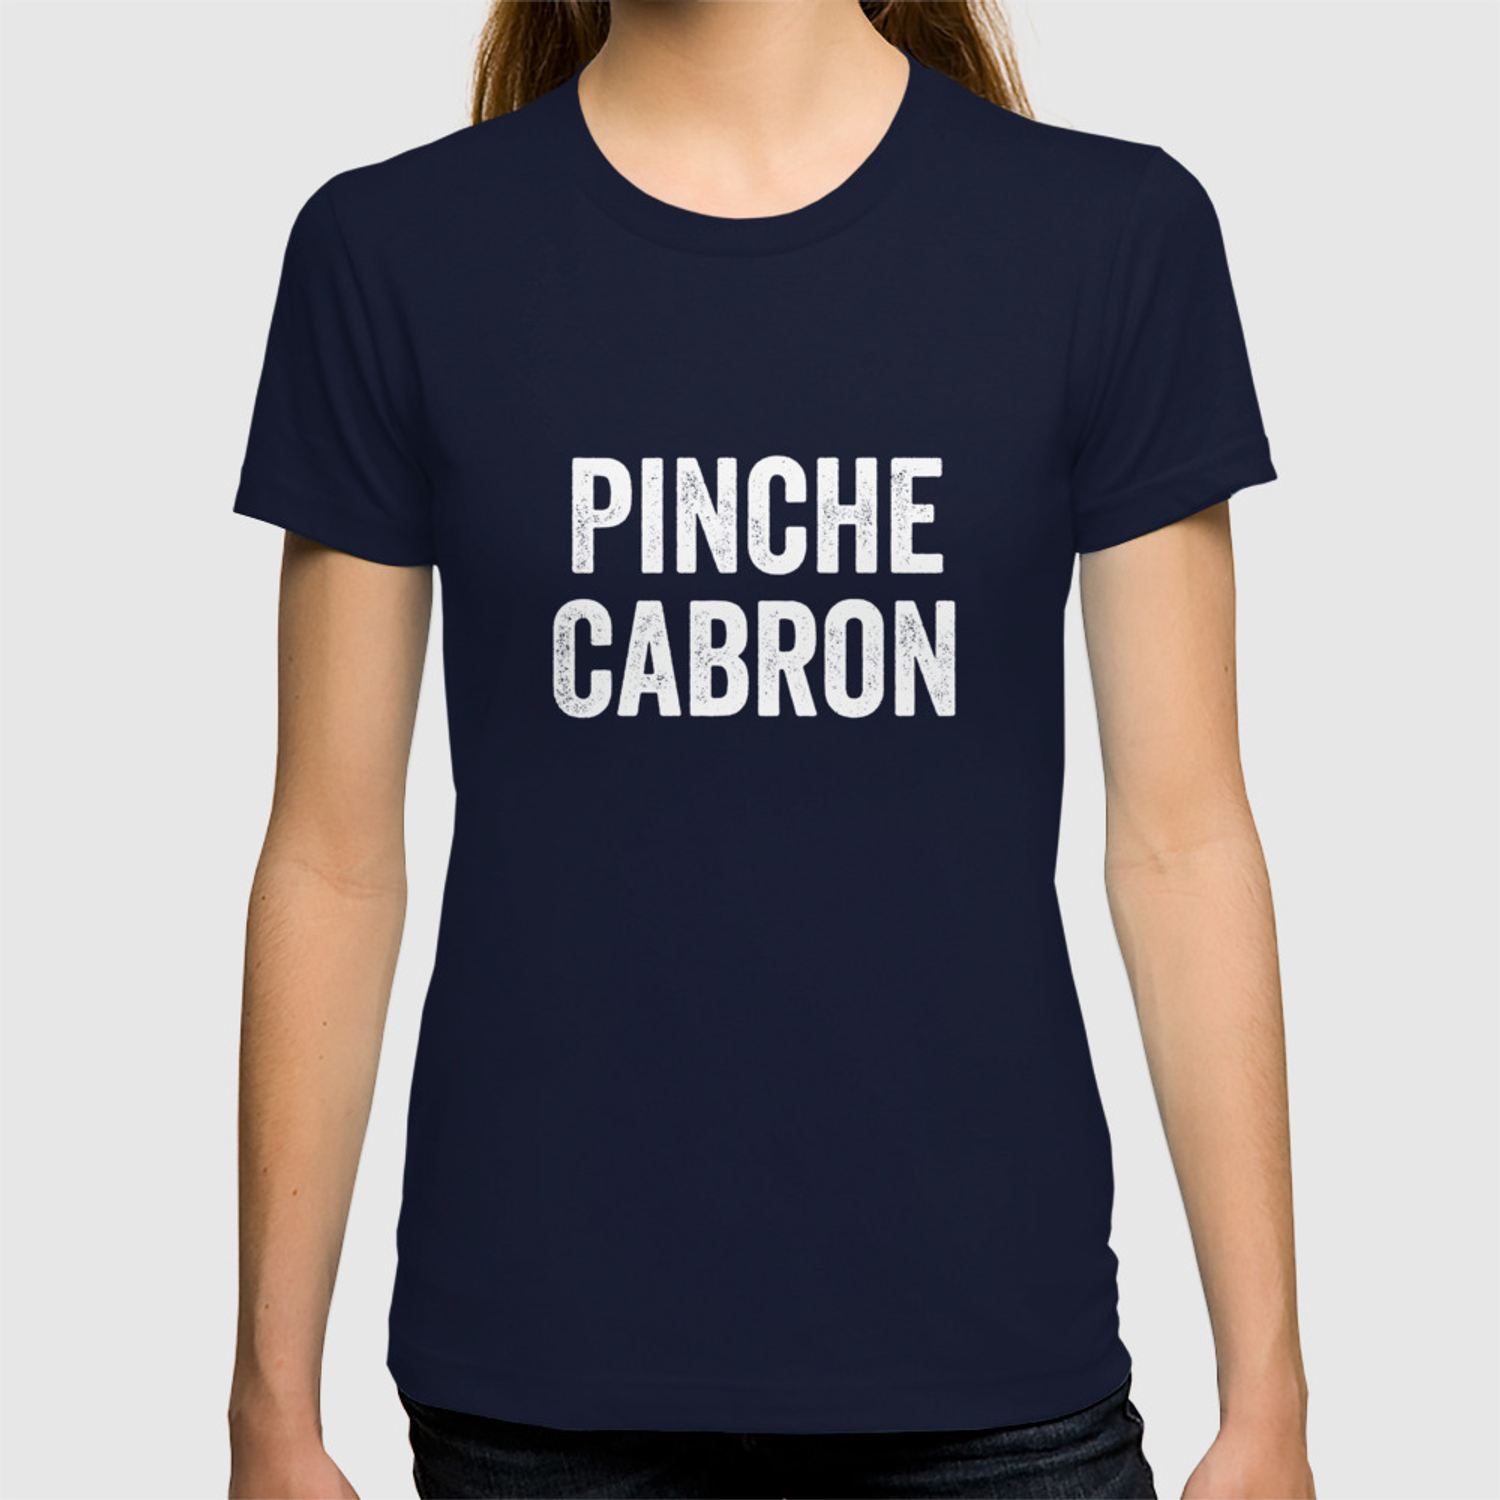 04c571c3 Pinche Cabron, Funny Spanish, Funny Mexican T-shirt by jmgdesigns ...